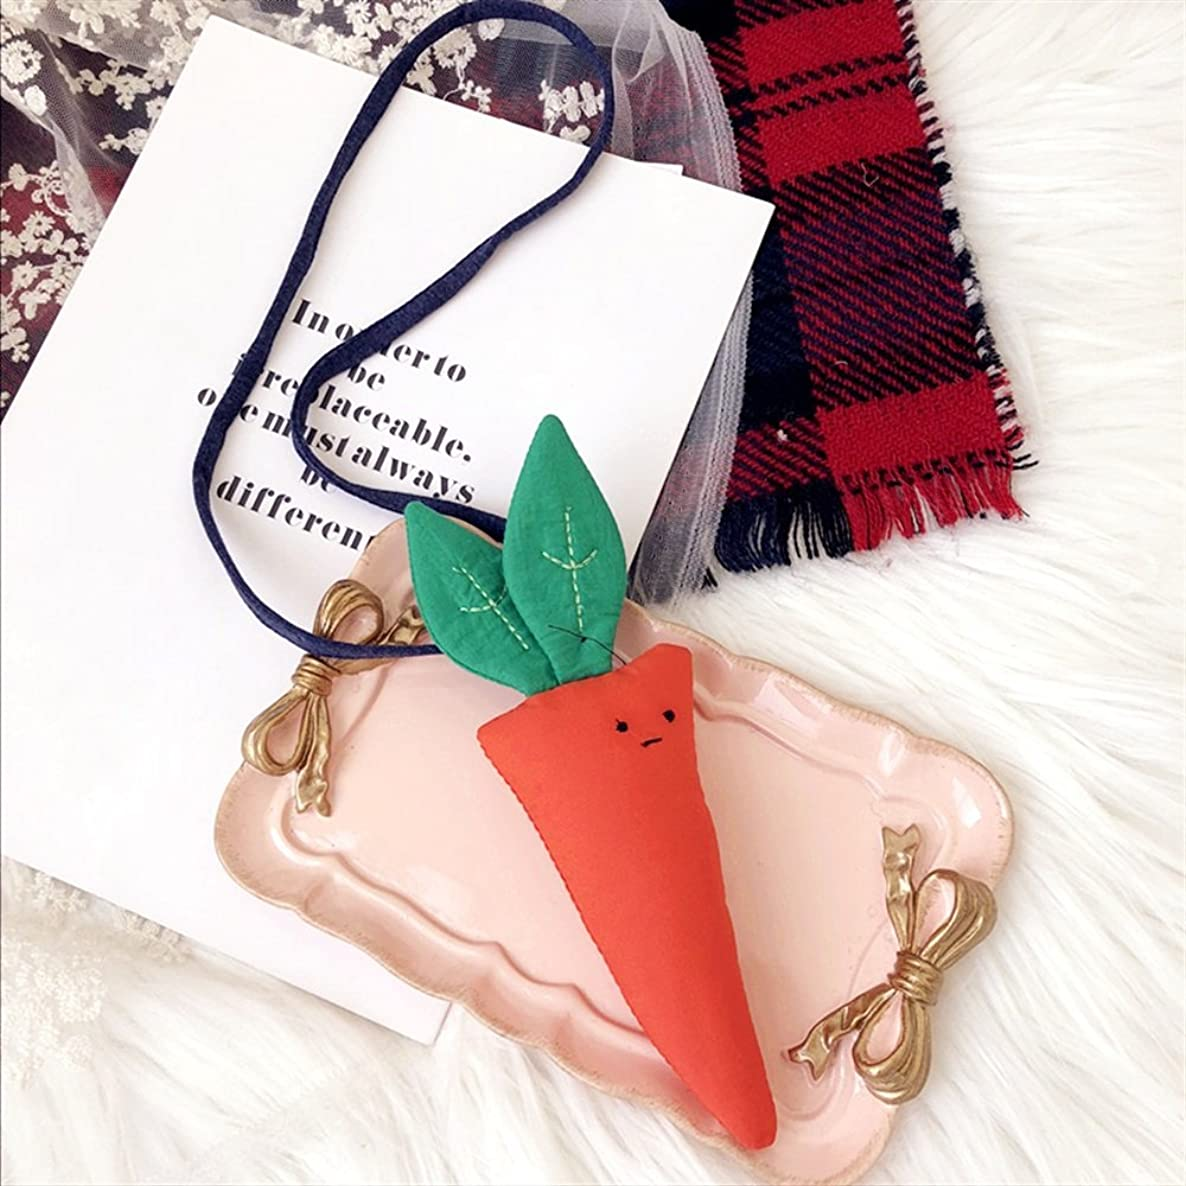 Royarebar Fashion Ladies Necklaces, Little Girl Carrot Pendant Necklace Jewellery Collections Charm Necklace ybew7853462460